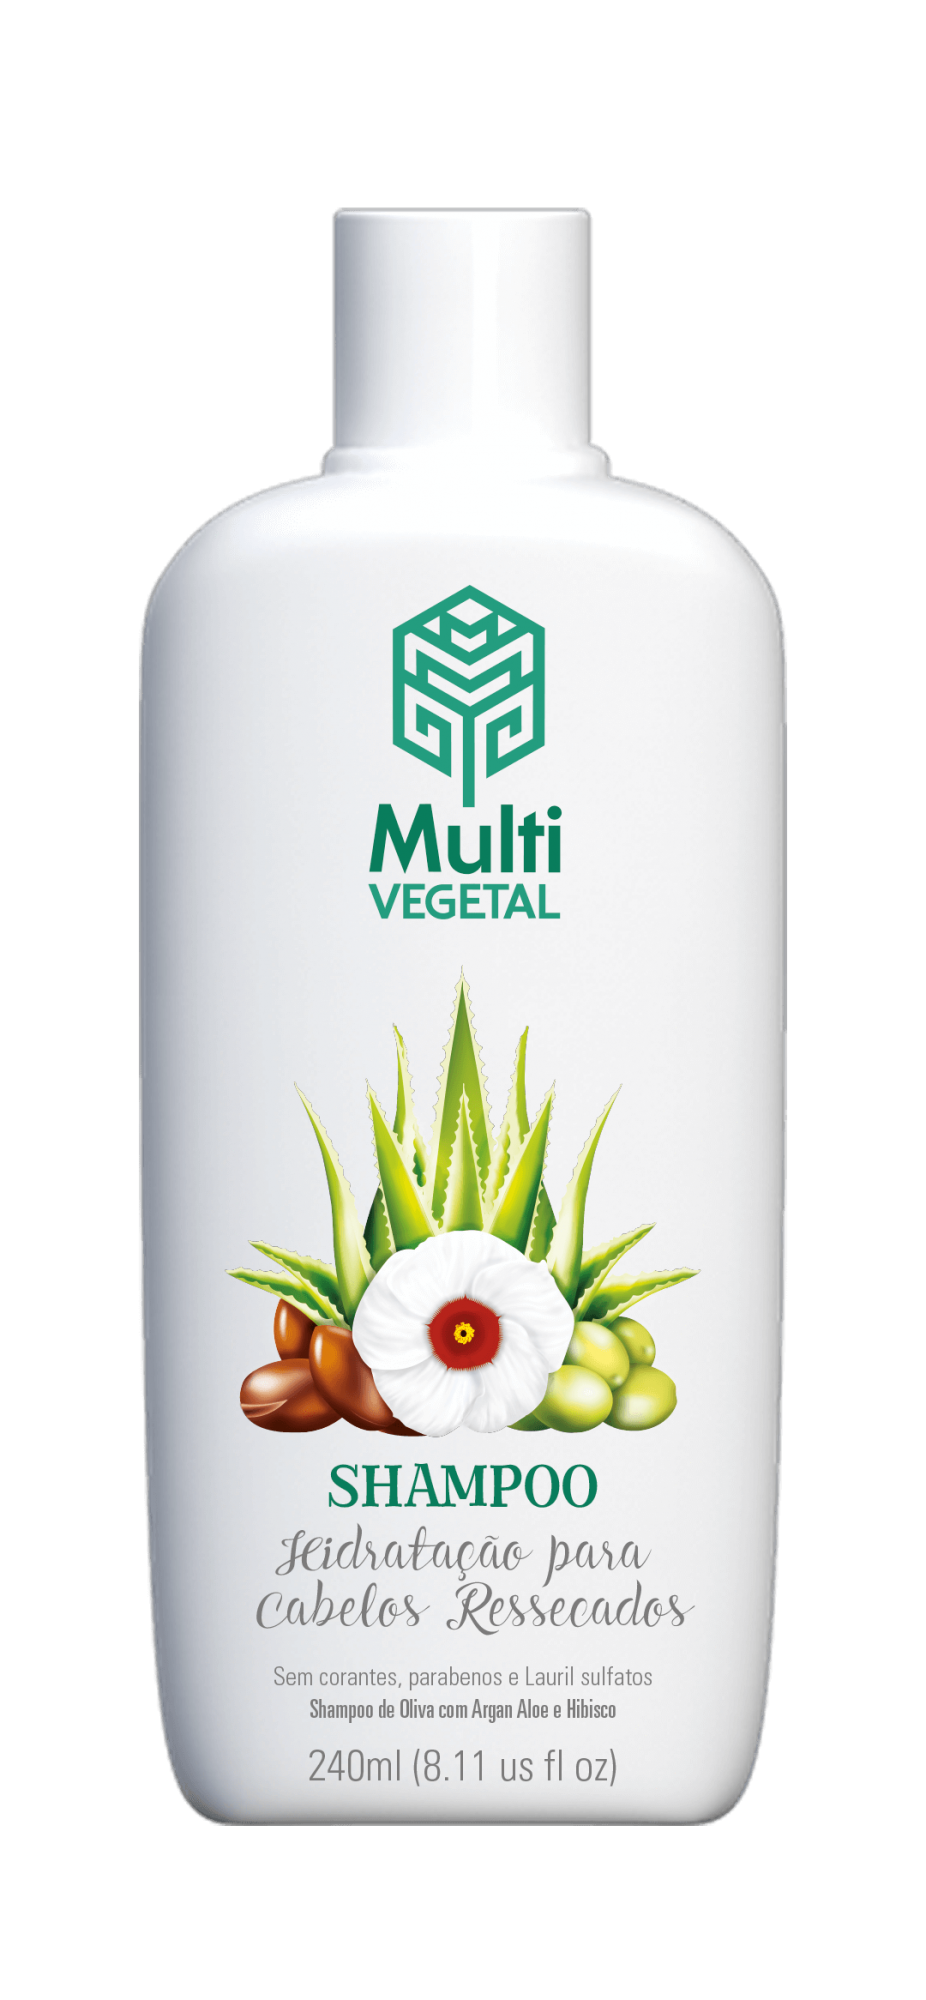 Shampoo de Oliva com Argan Multi Vegetal 240ml